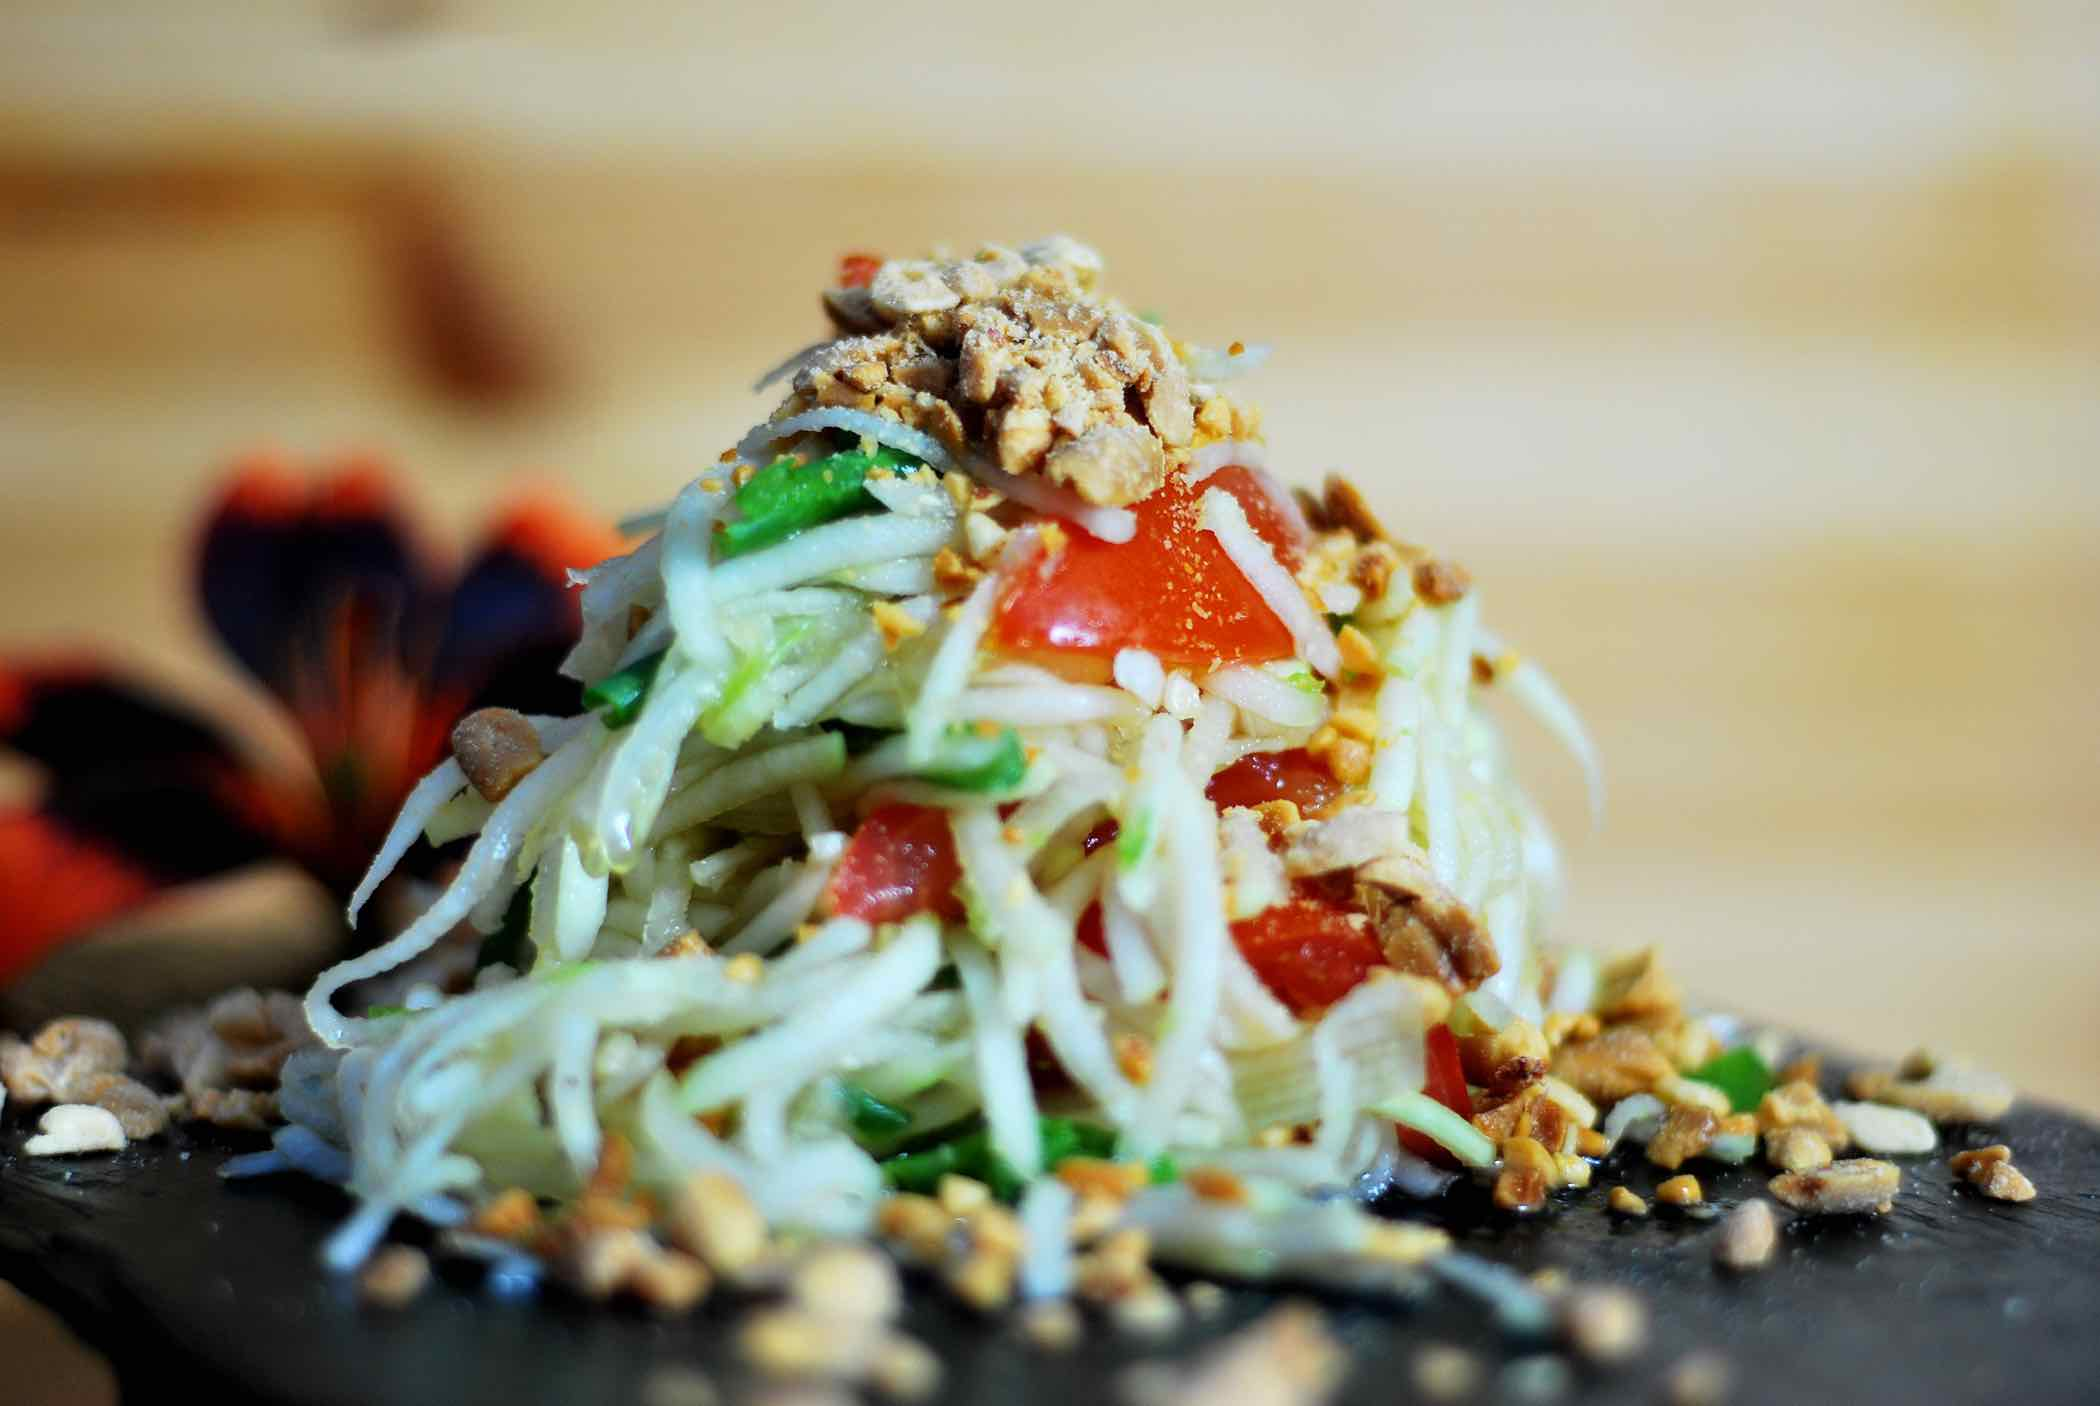 Papaya salad topped with peanuts